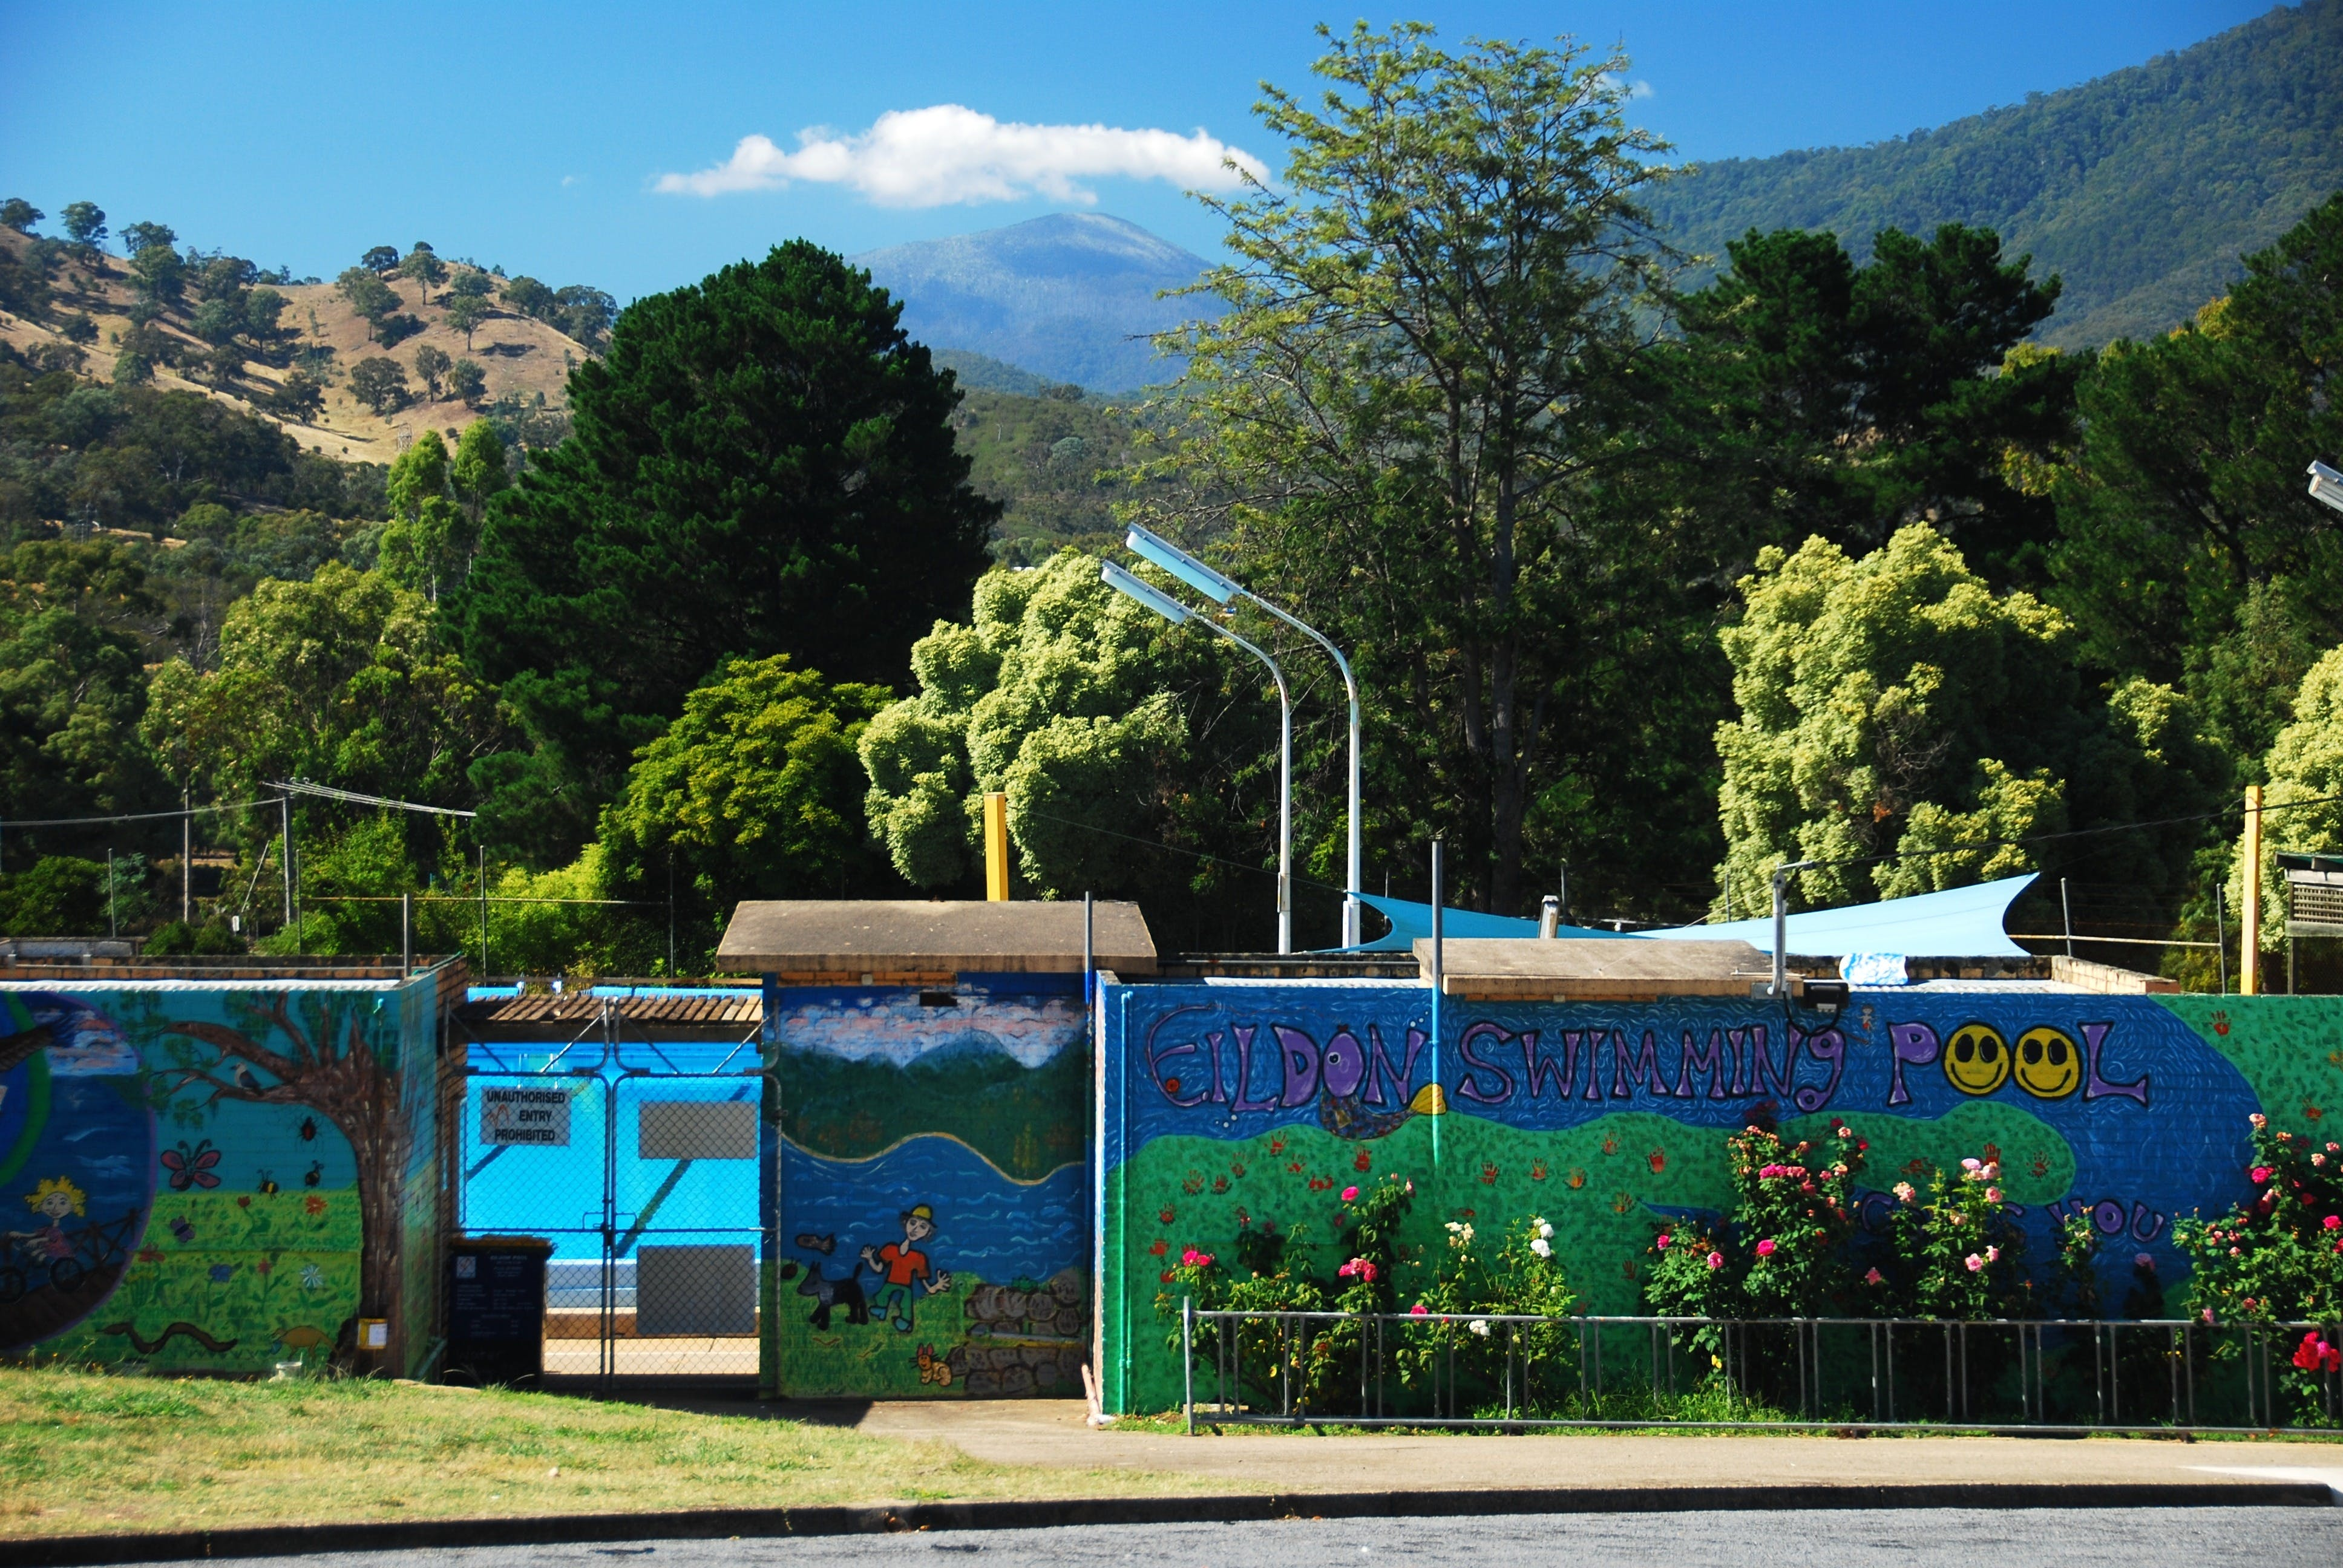 Eildon Outdoor Swimming Pool - ACT Tourism